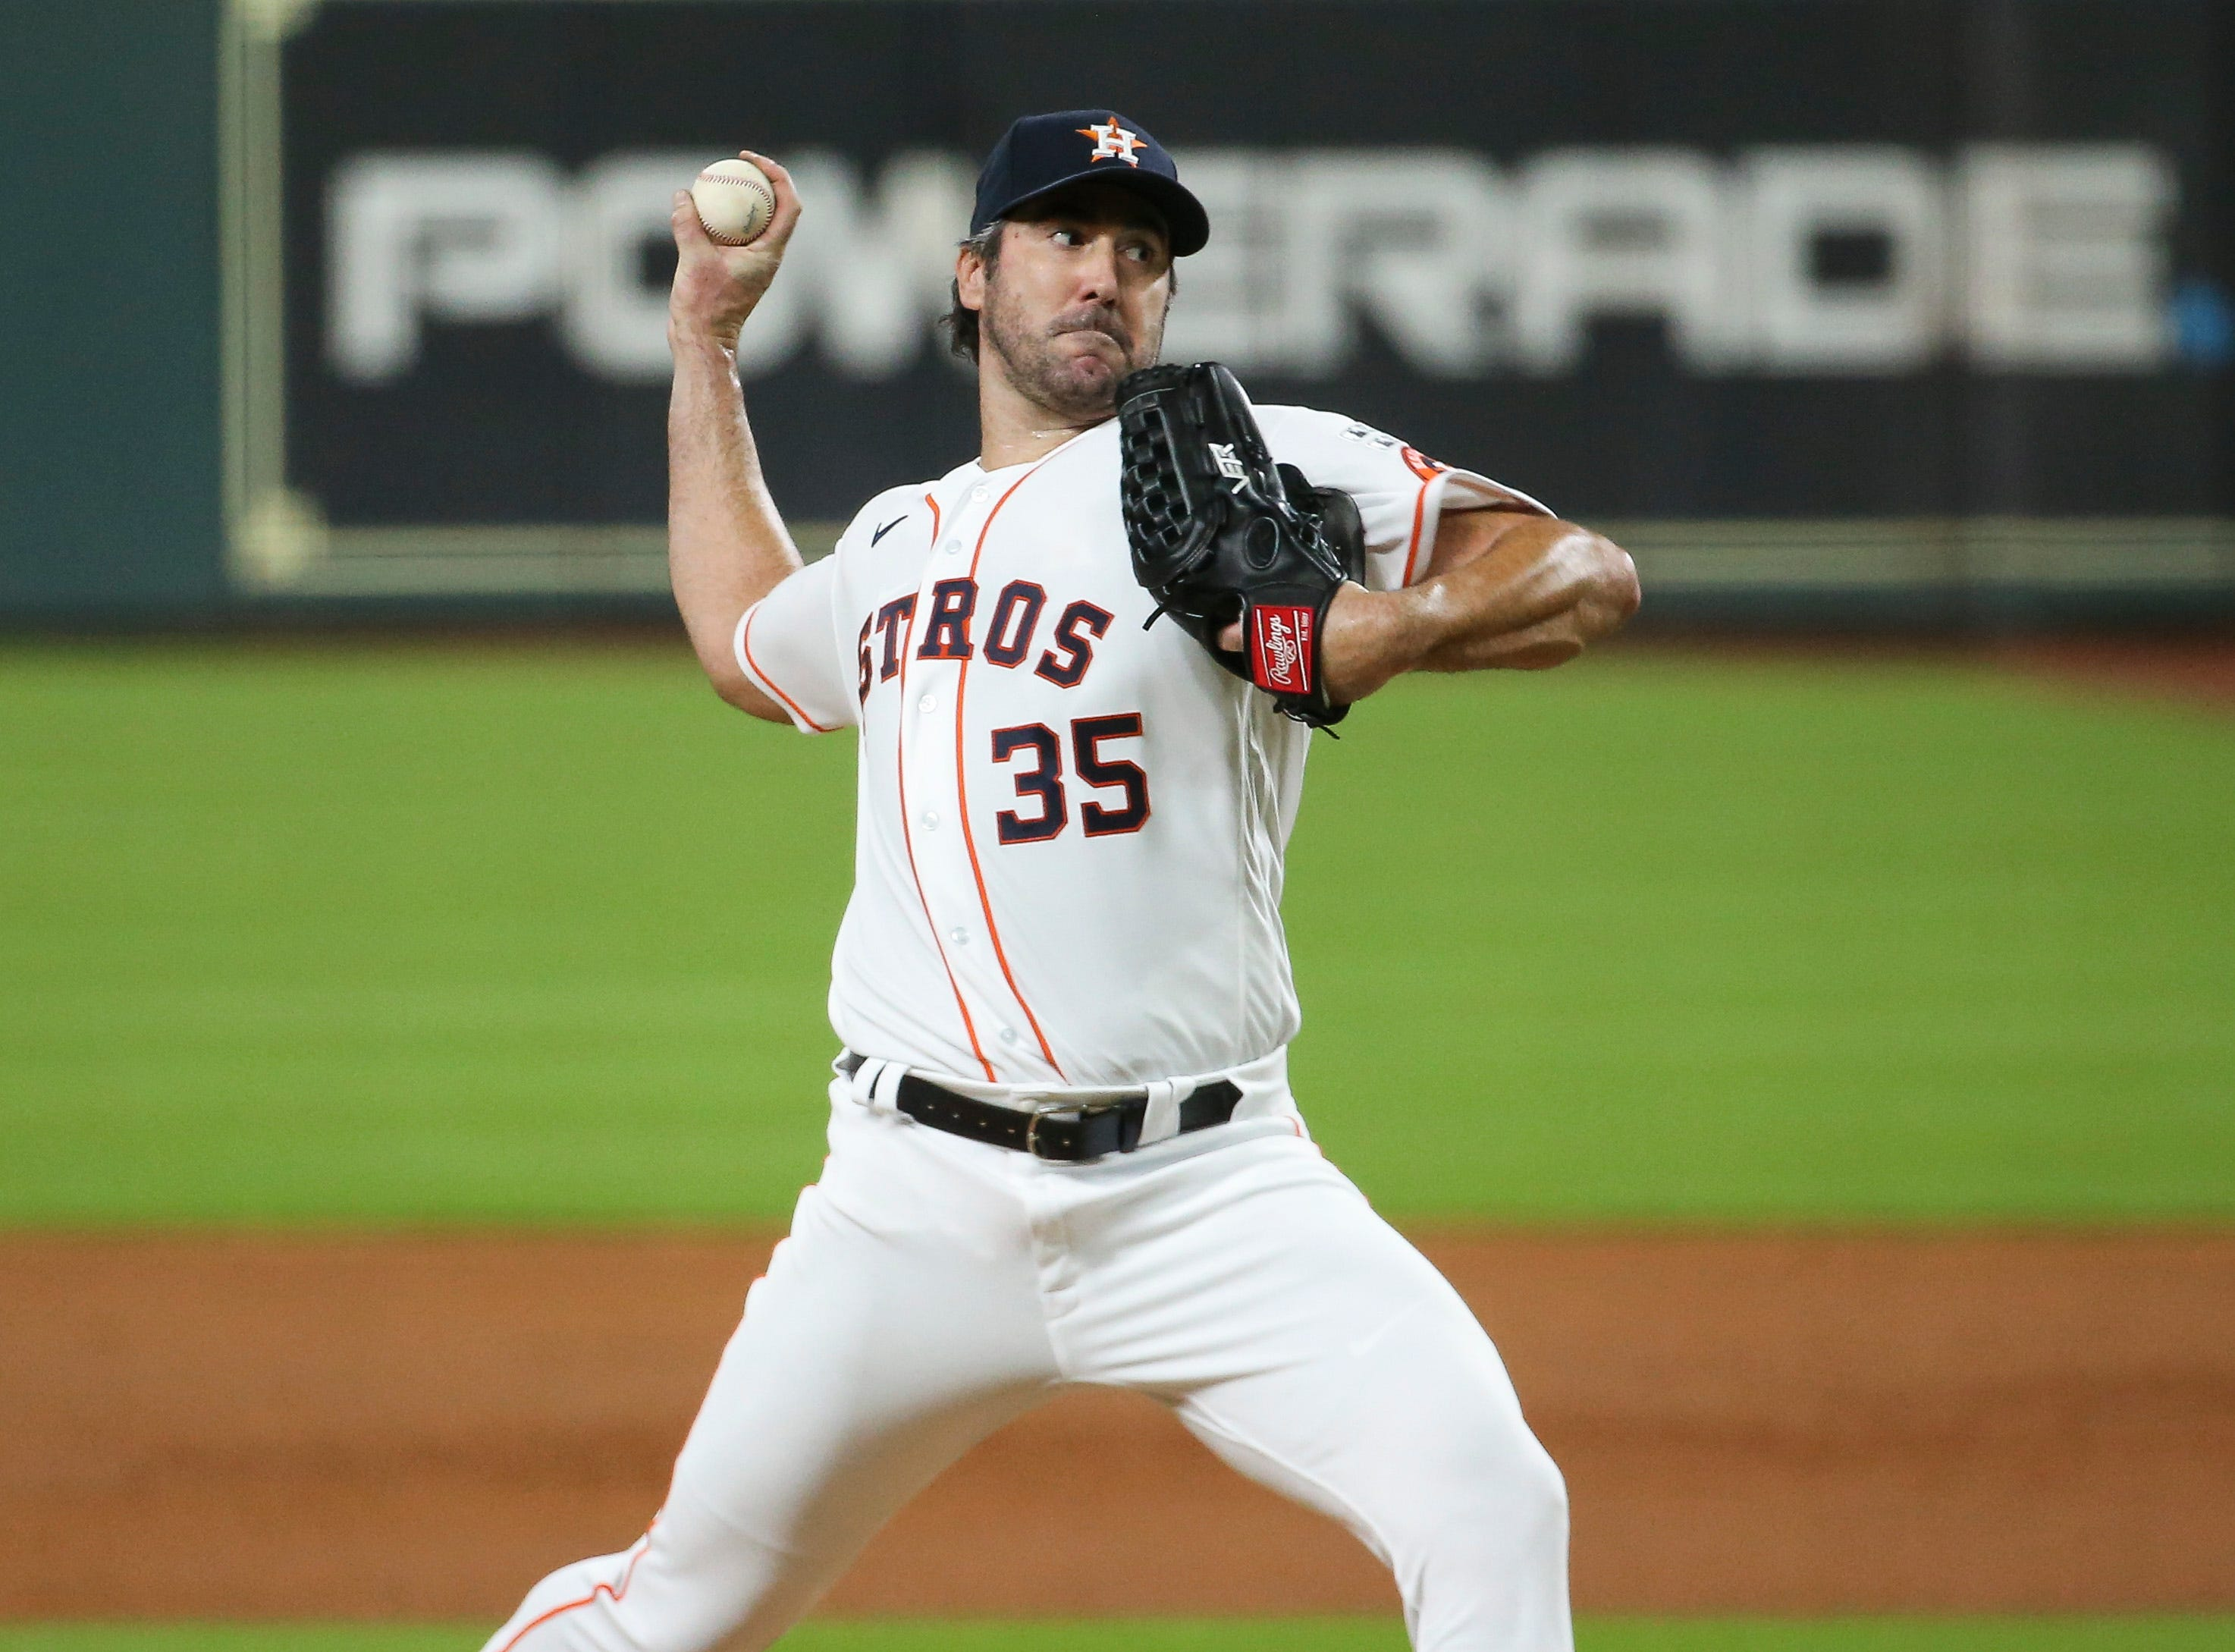 Two-time Cy Young Award winner Justin Verlander to undergo Tommy John surgery, will miss 2021 season